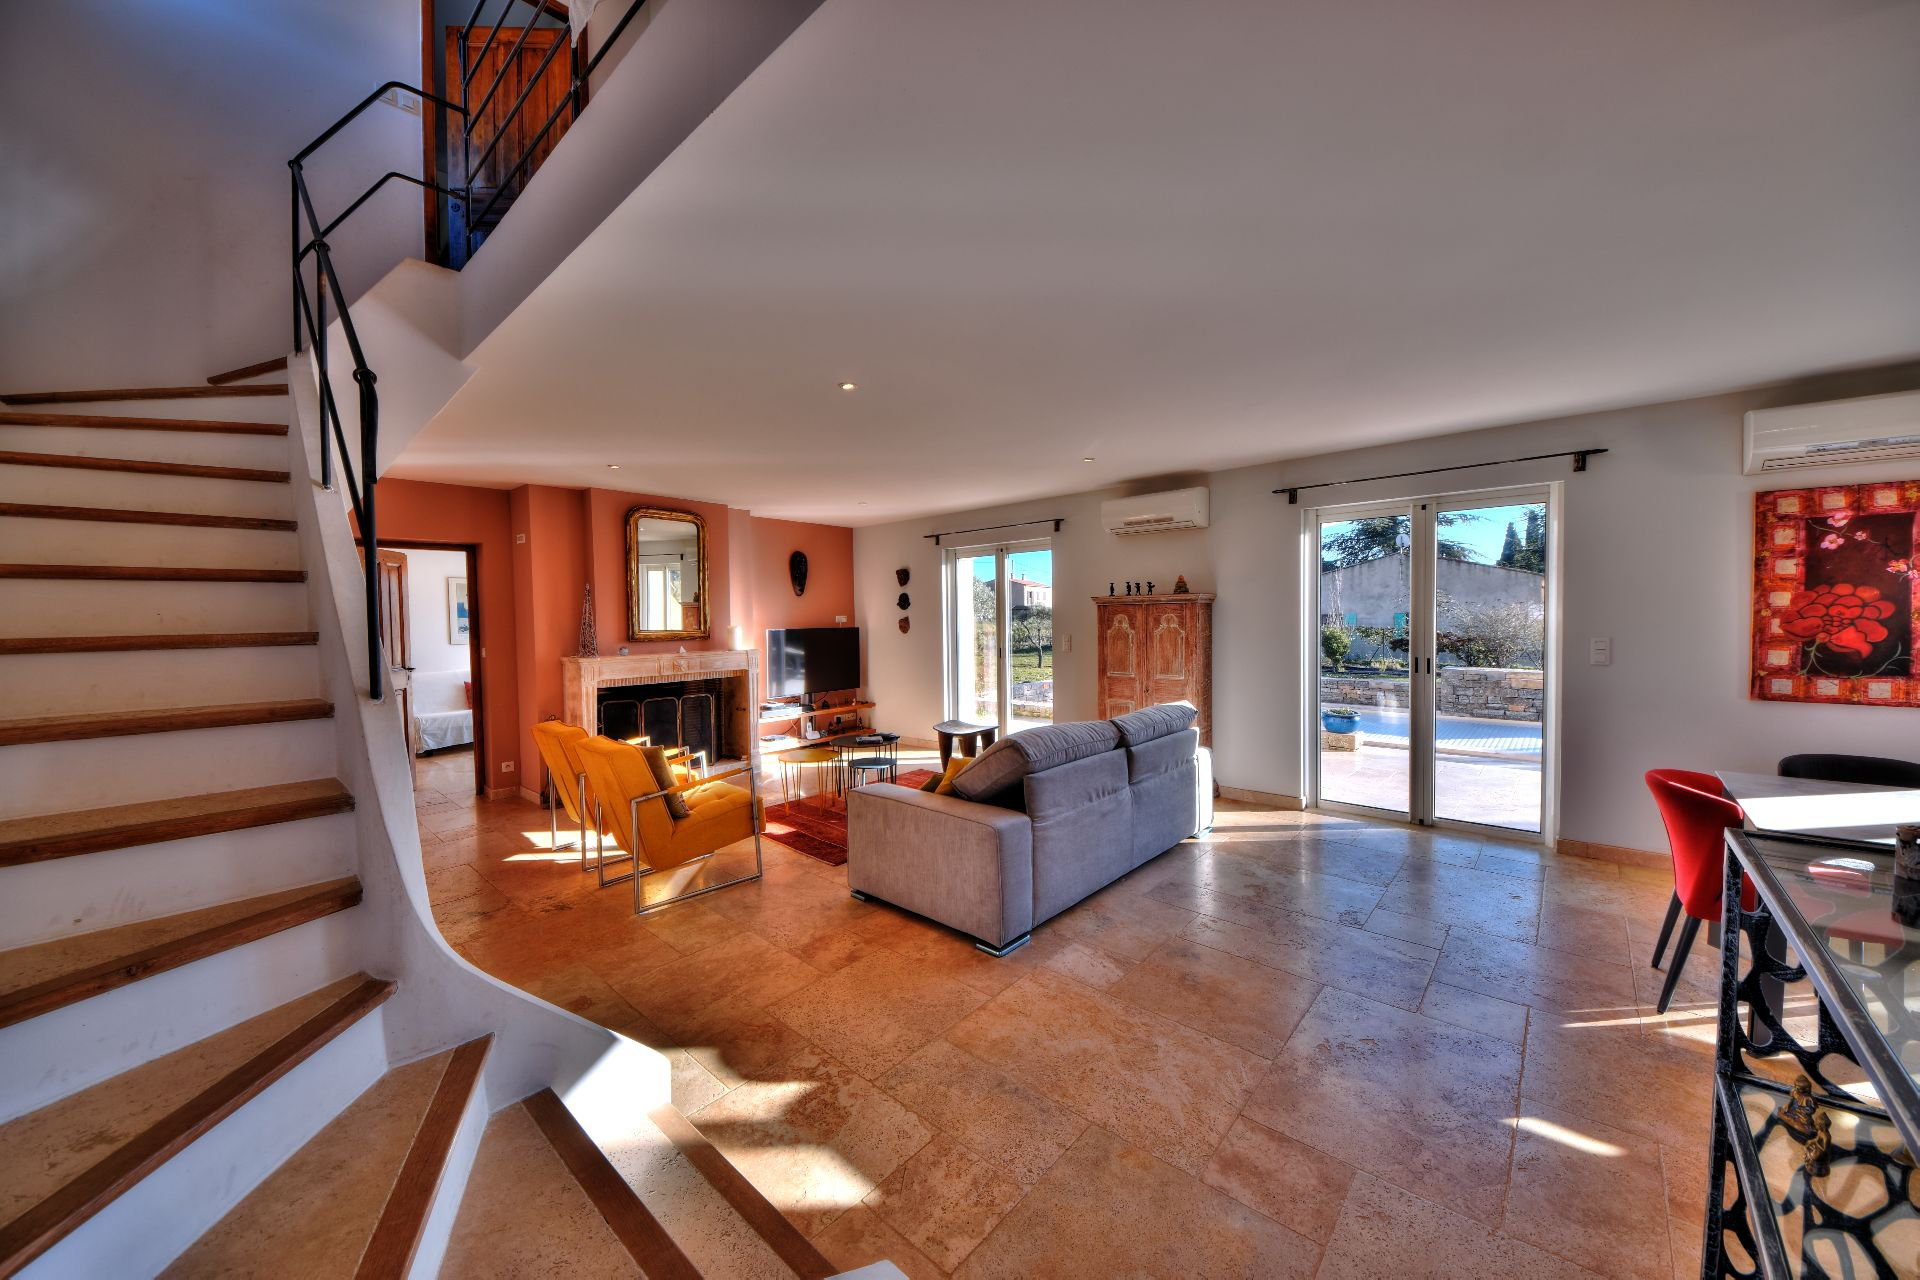 View of the staircase of the Bastide 4 bedrooms with swimming pool Aups, Var, Provence